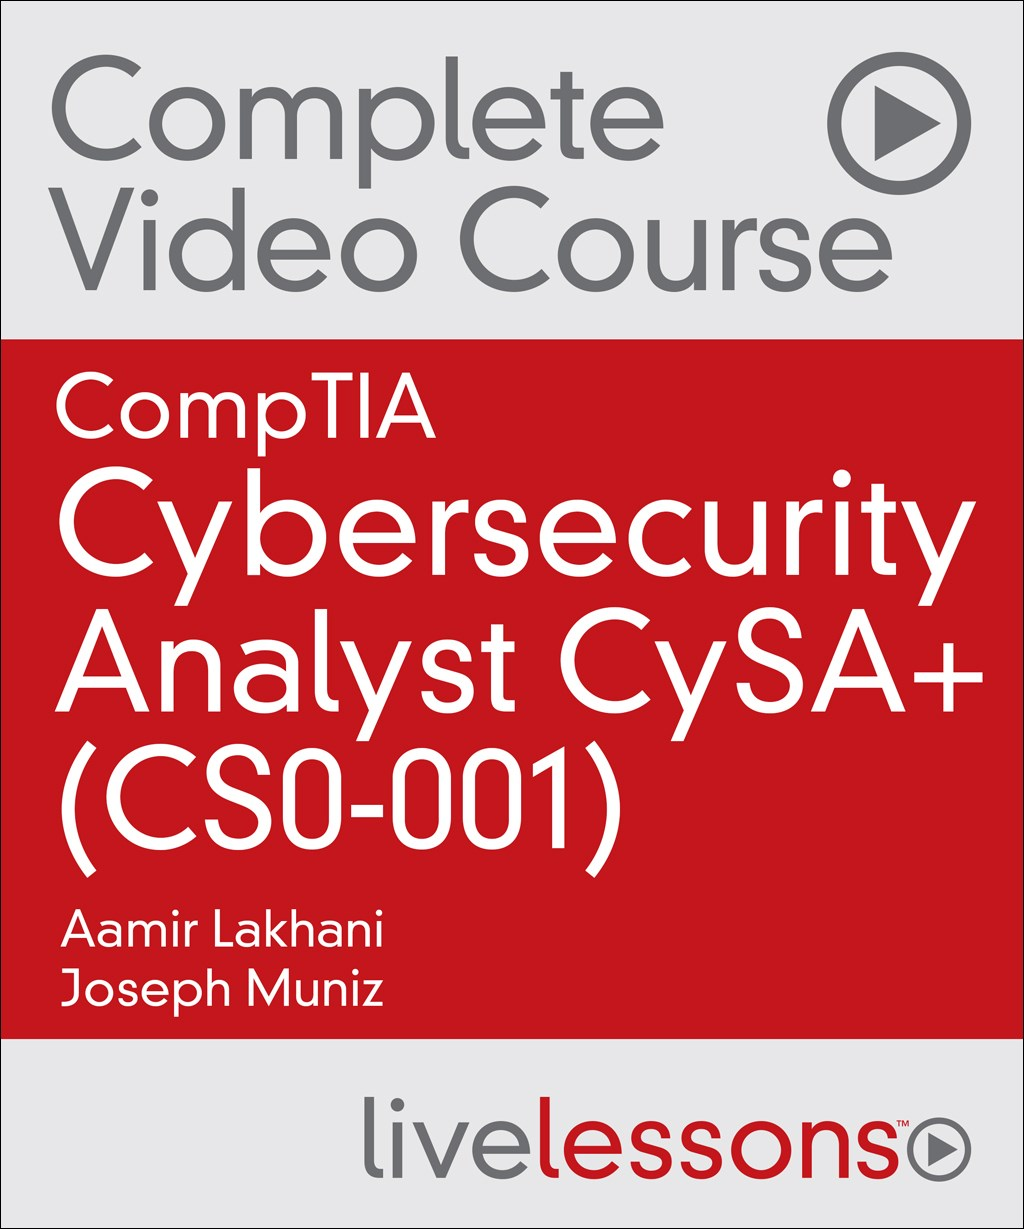 CompTIA Cybersecurity Analyst CySA+ Complete Video Course